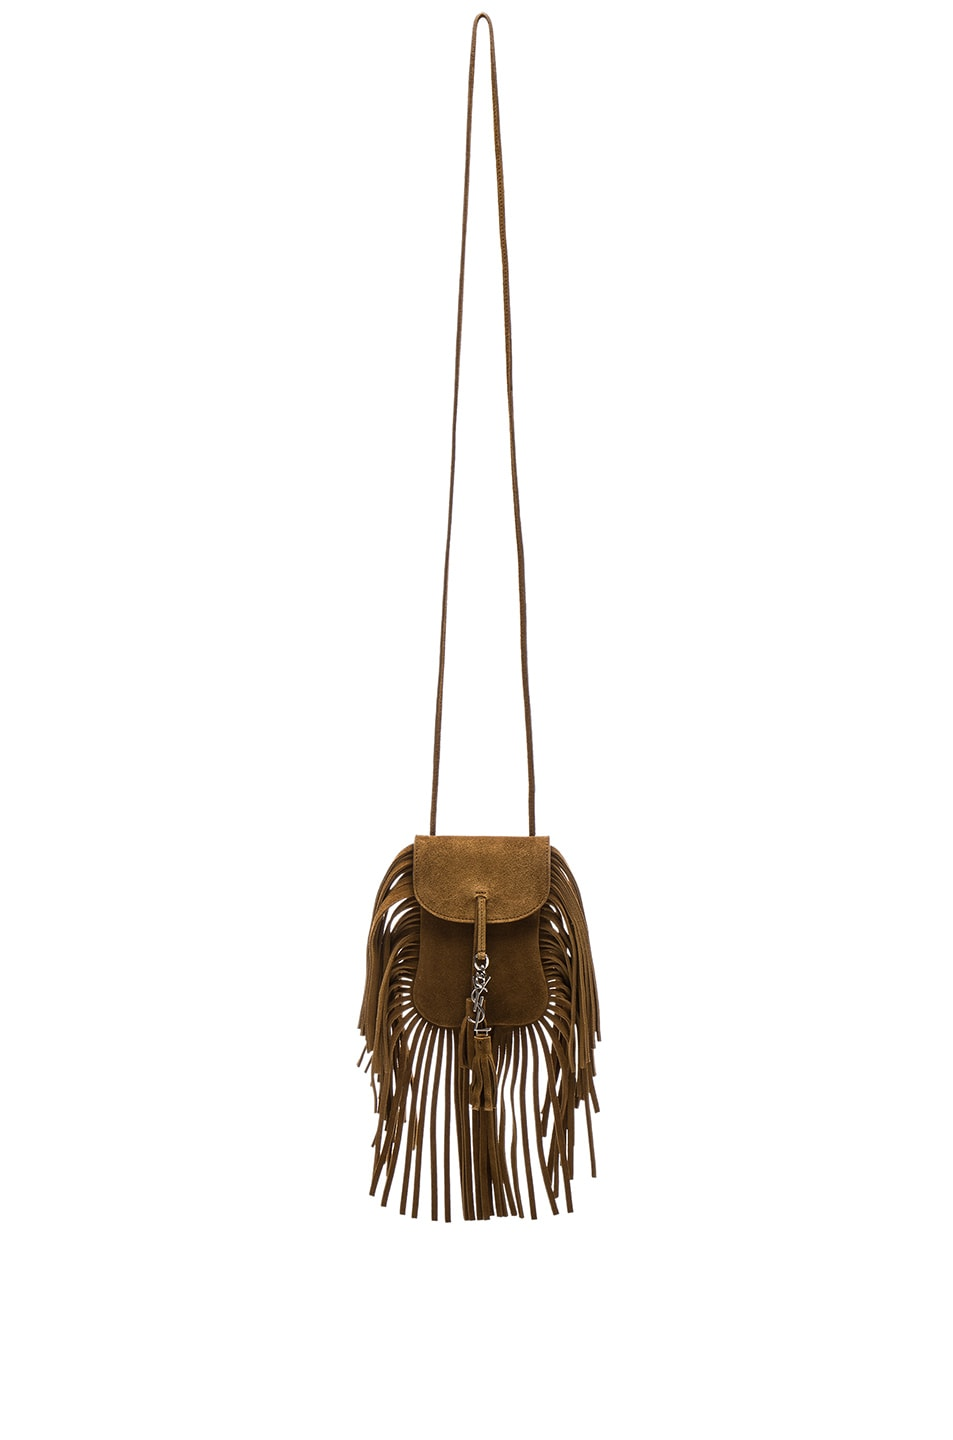 bdc1c4dc98 Image 1 of Saint Laurent Toy Anita Suede   Fringe Bag in Light Ocre